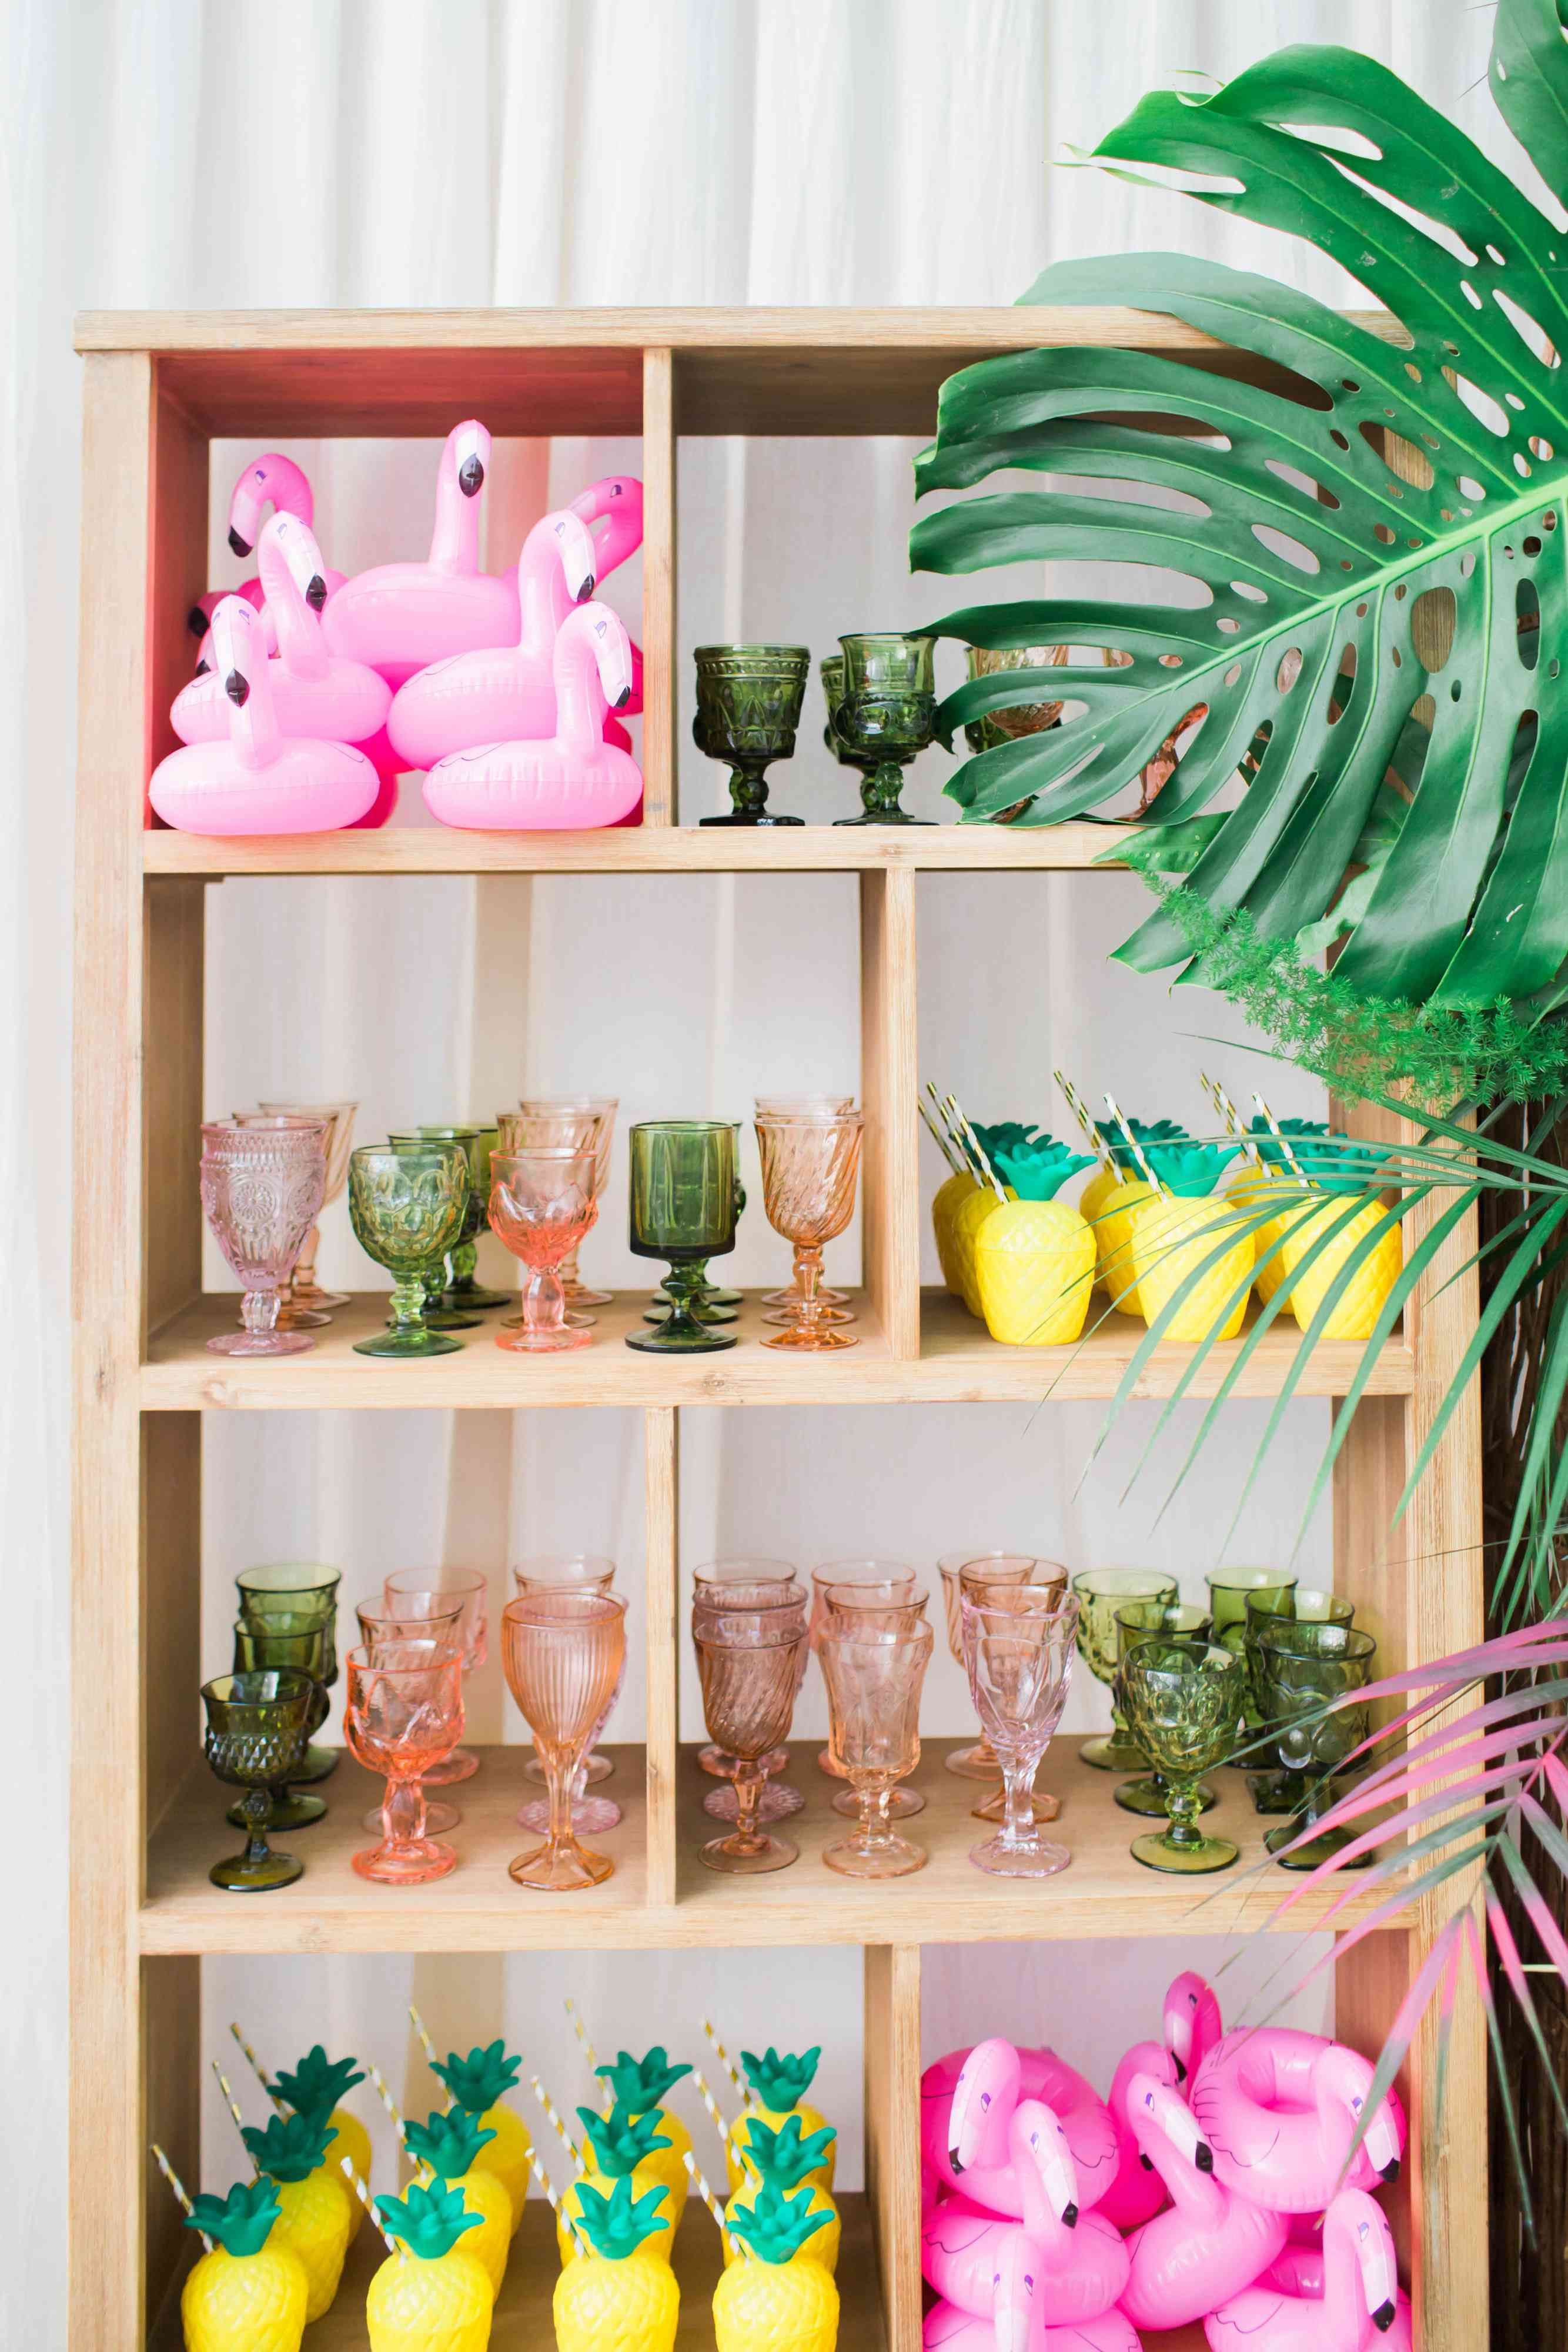 Glasses and blow up flamingo glassholders